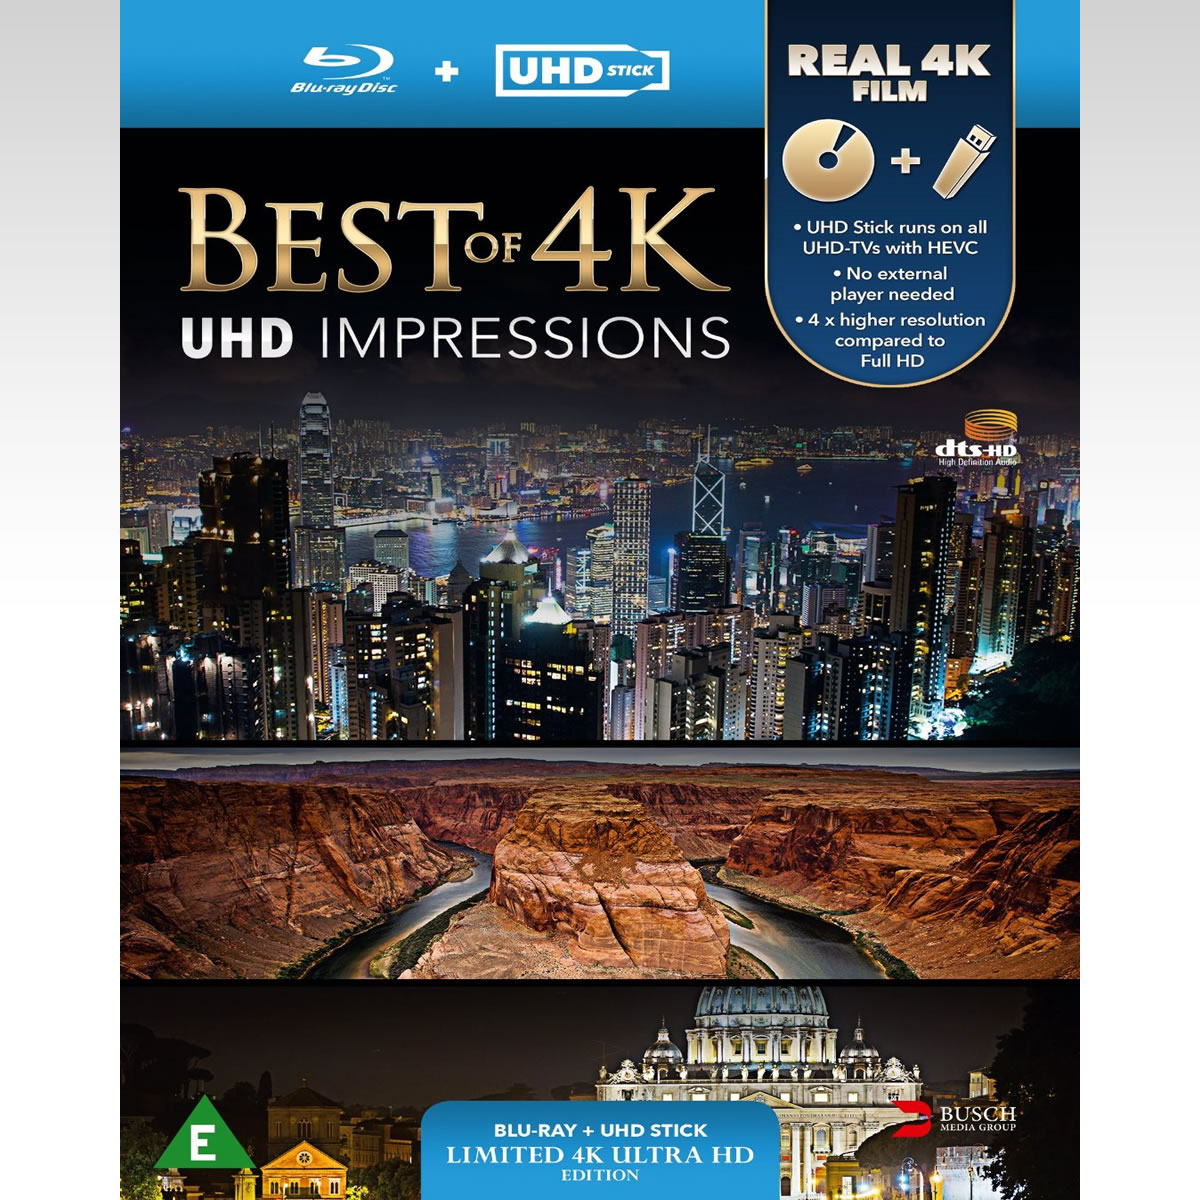 BEST OF 4K: UHD IMPRESSIONS - Limited Edition (BLU-RAY + UHD Stick)